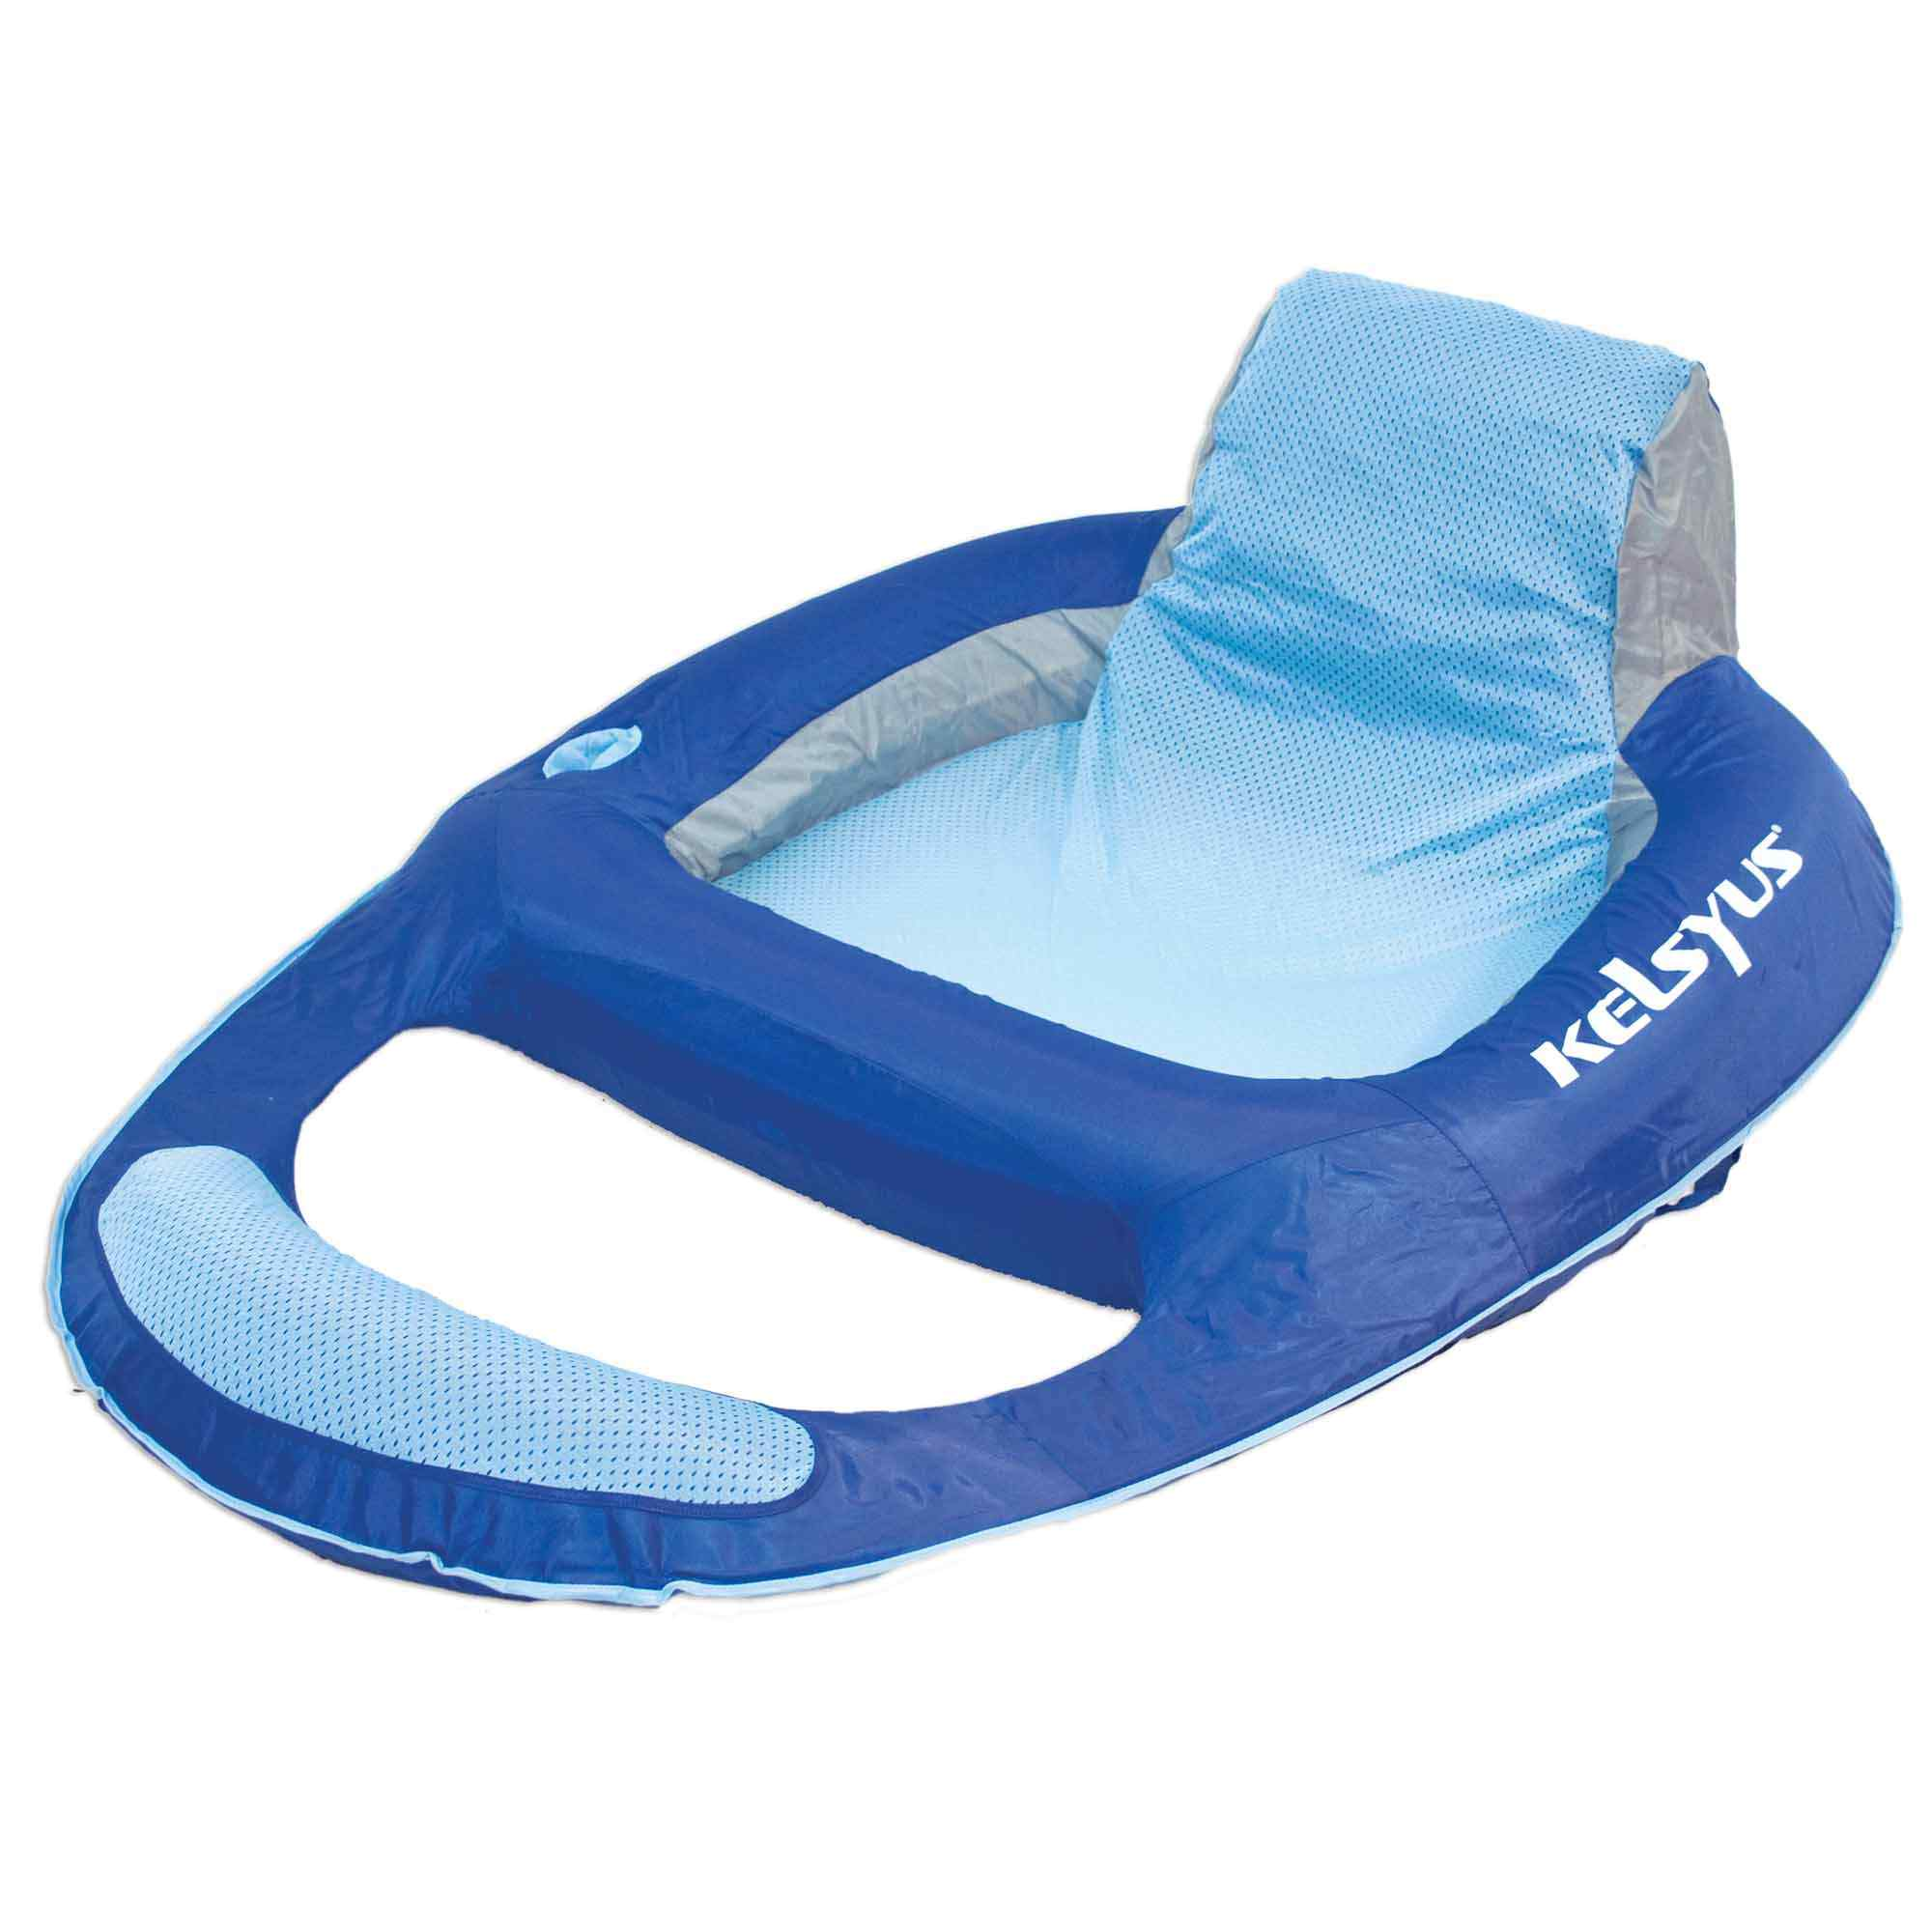 floating pool chair hanging pakistan large portable lounger with headrest dfohome